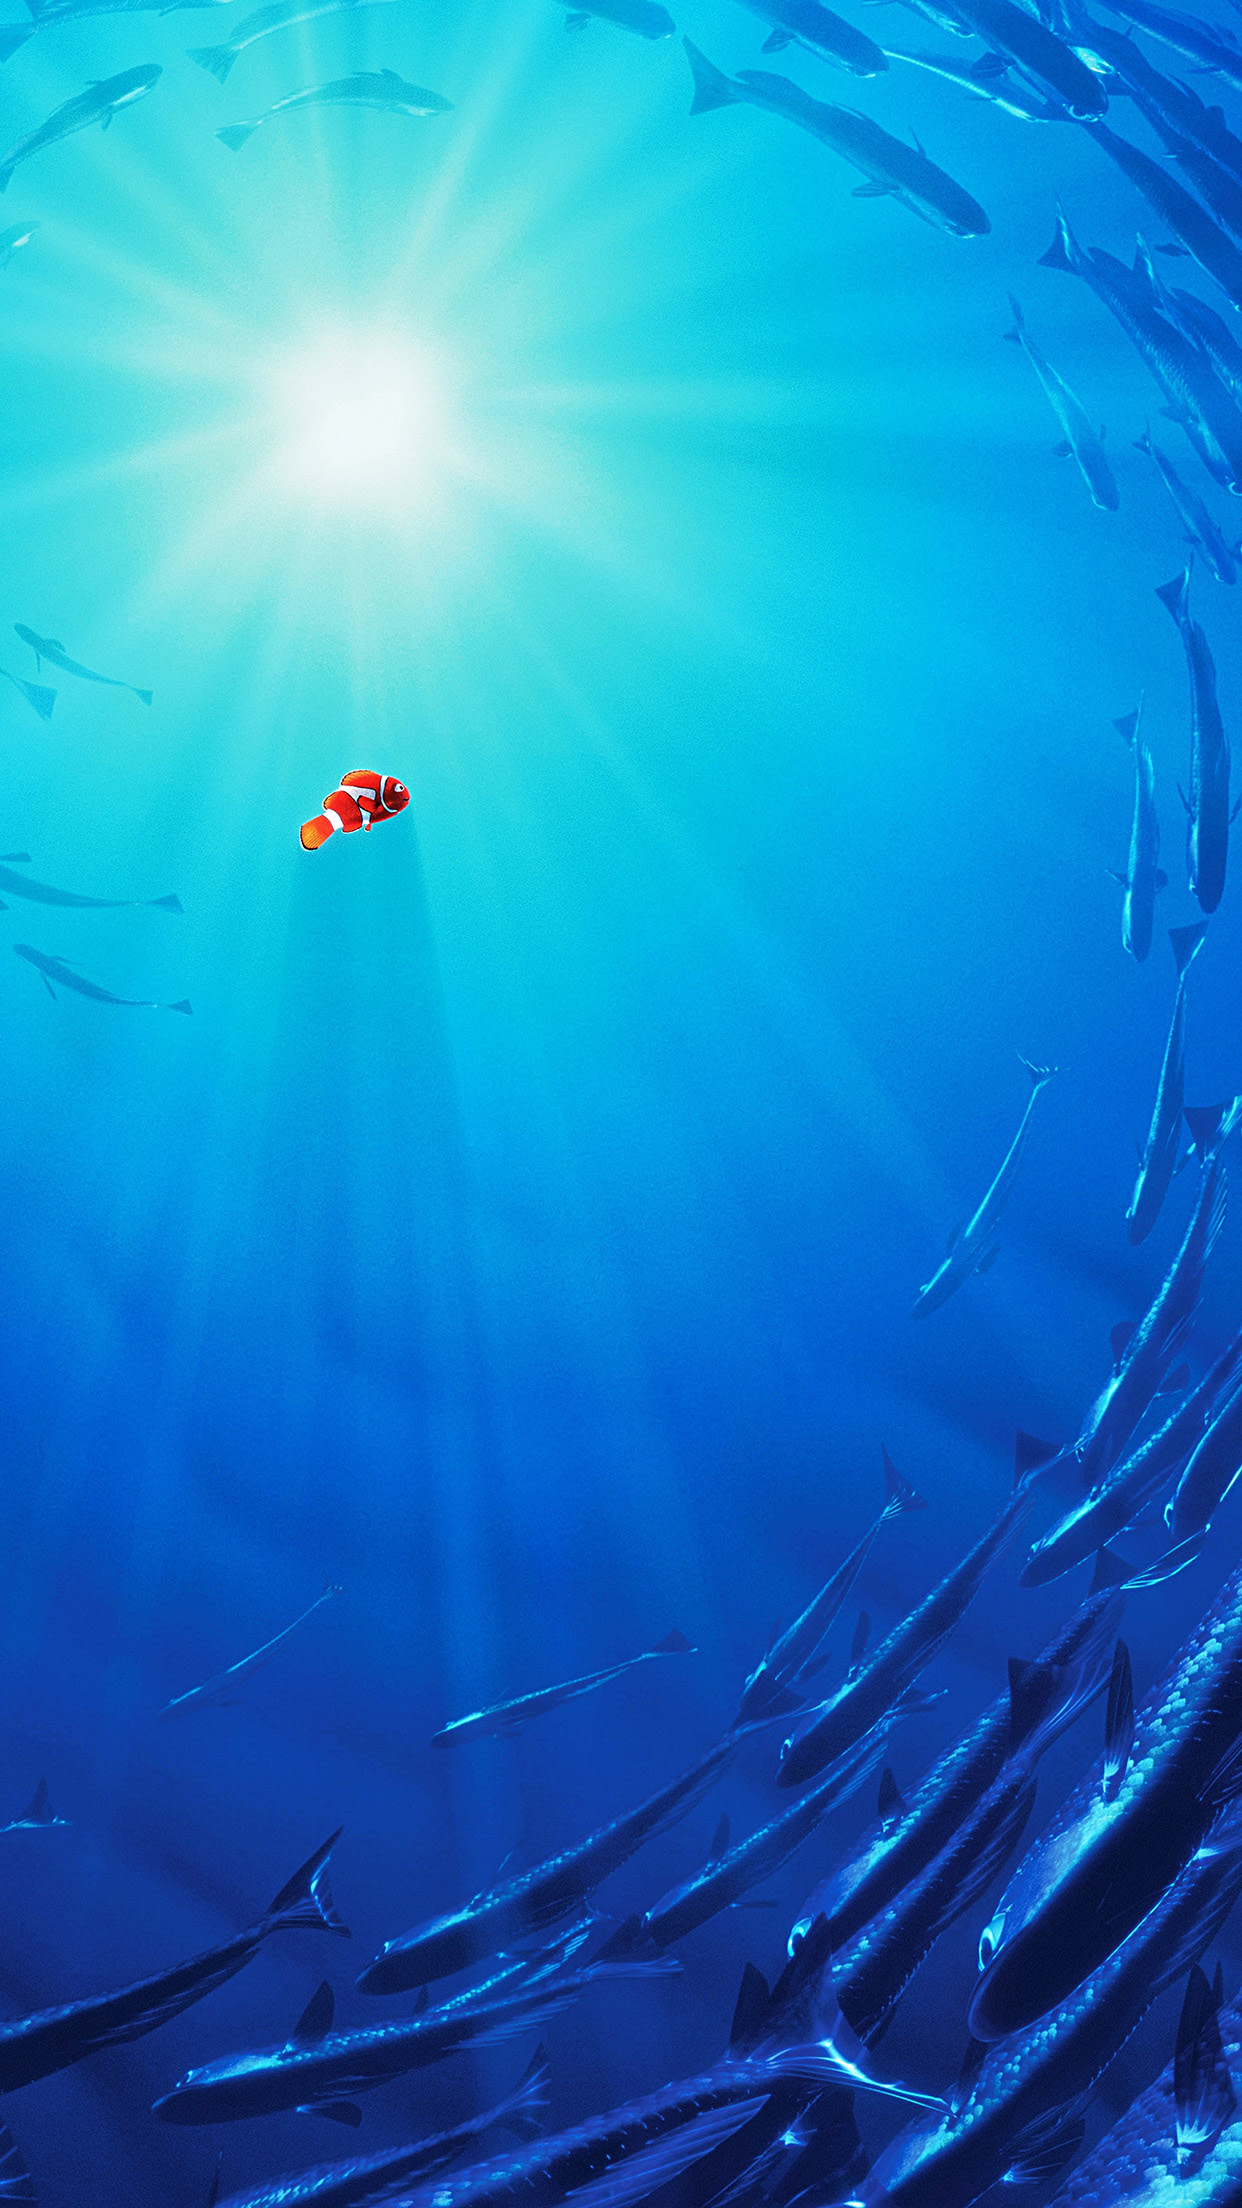 Iphone7papers Com Iphone7 Wallpaper Aw13 Nemo Disney Film Anime